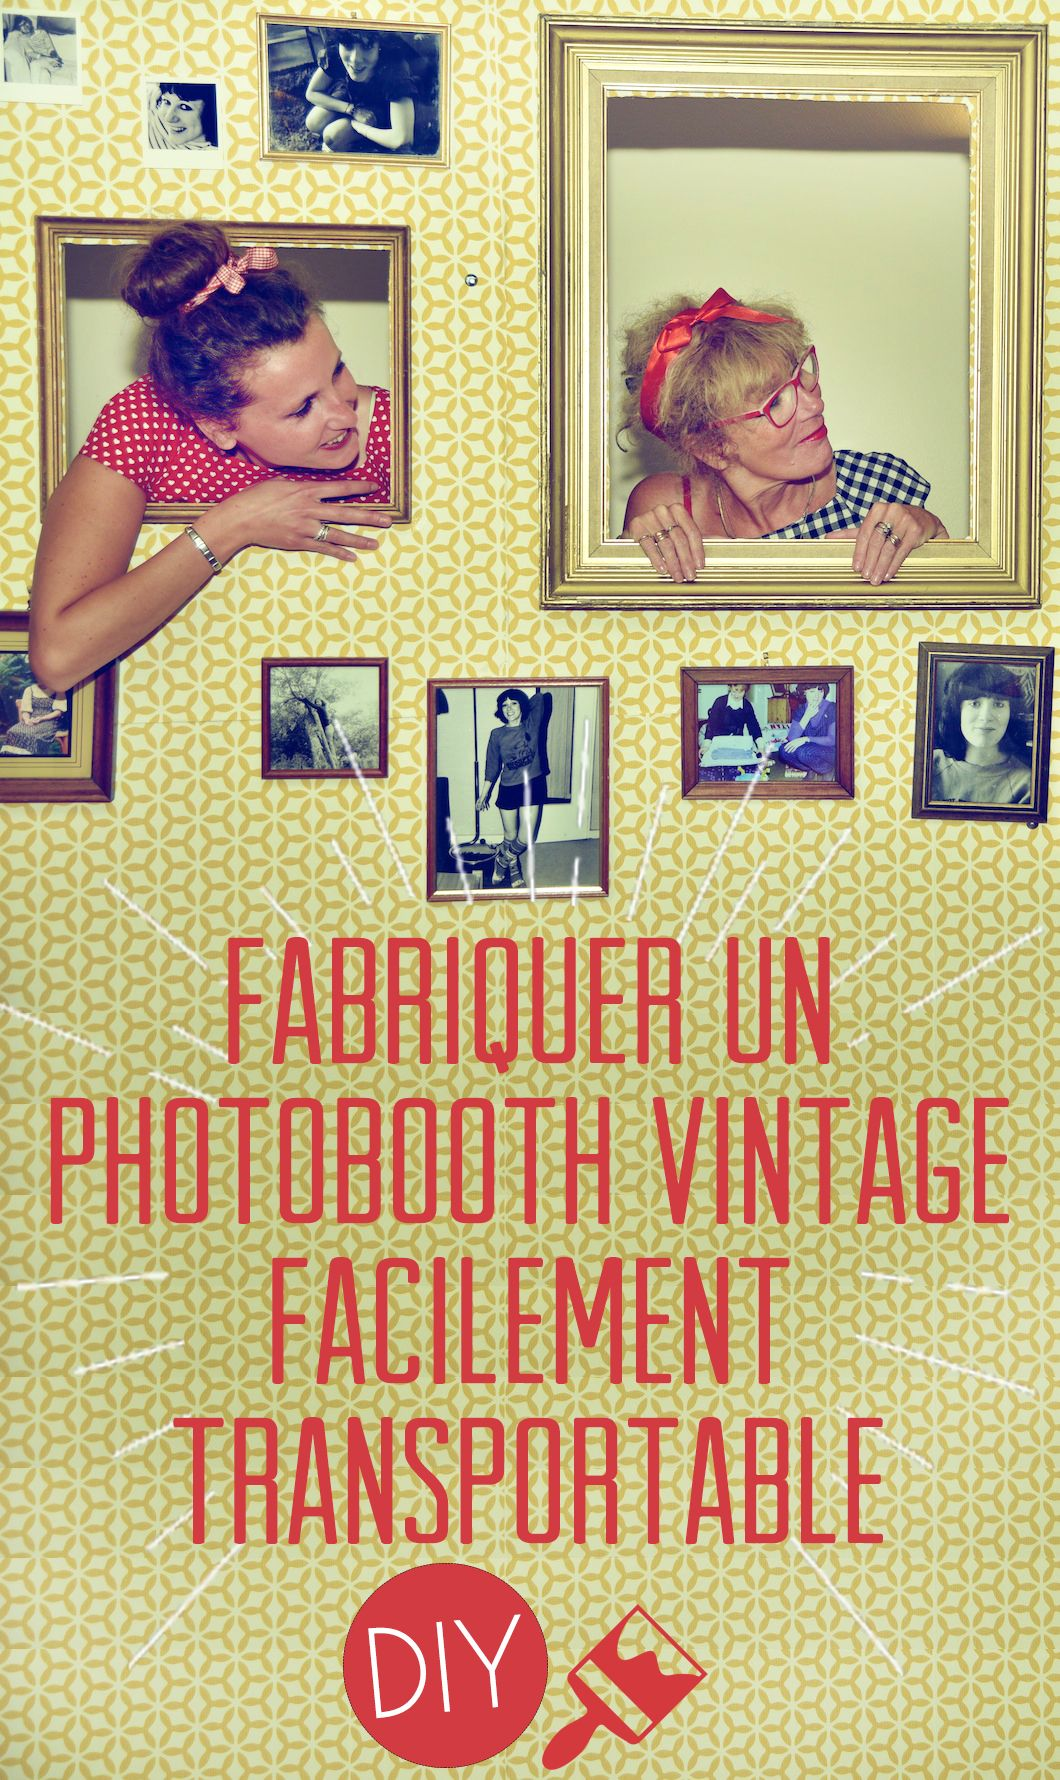 Diy Fabriquer Un Photobooth Vintage Facilement Transportable 22